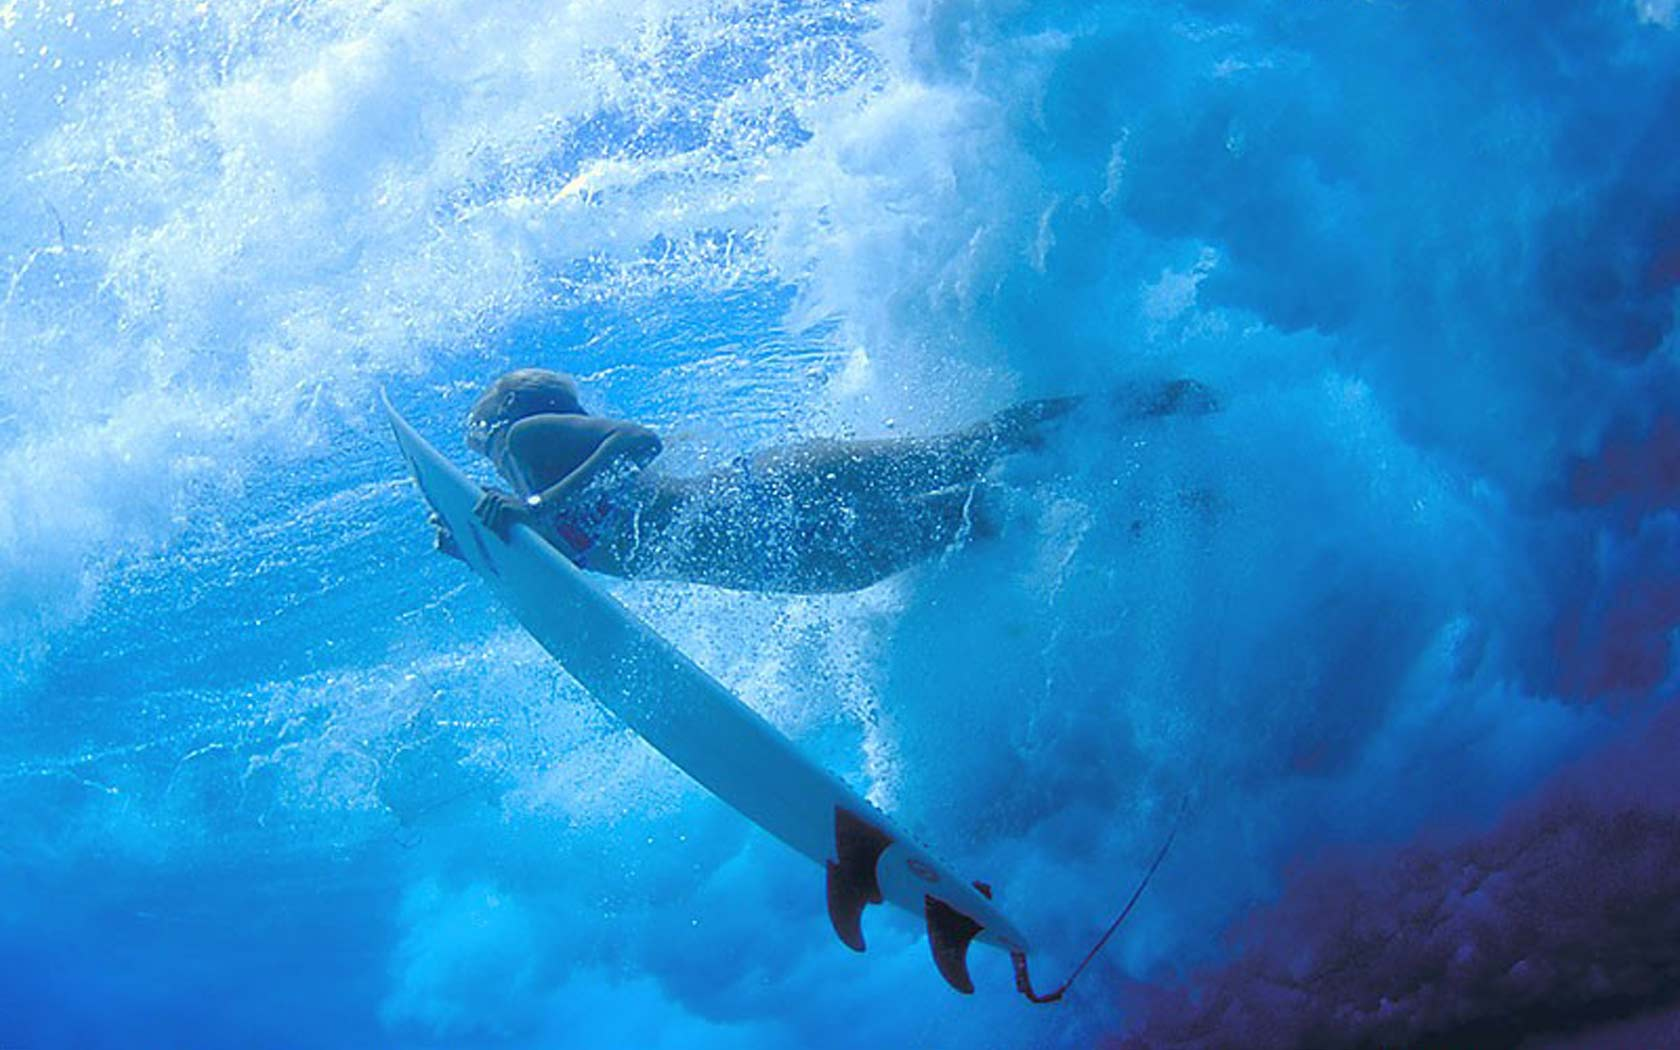 Pin Surf Girl Underwater Hd Wallpaper Placecom 1680x1050